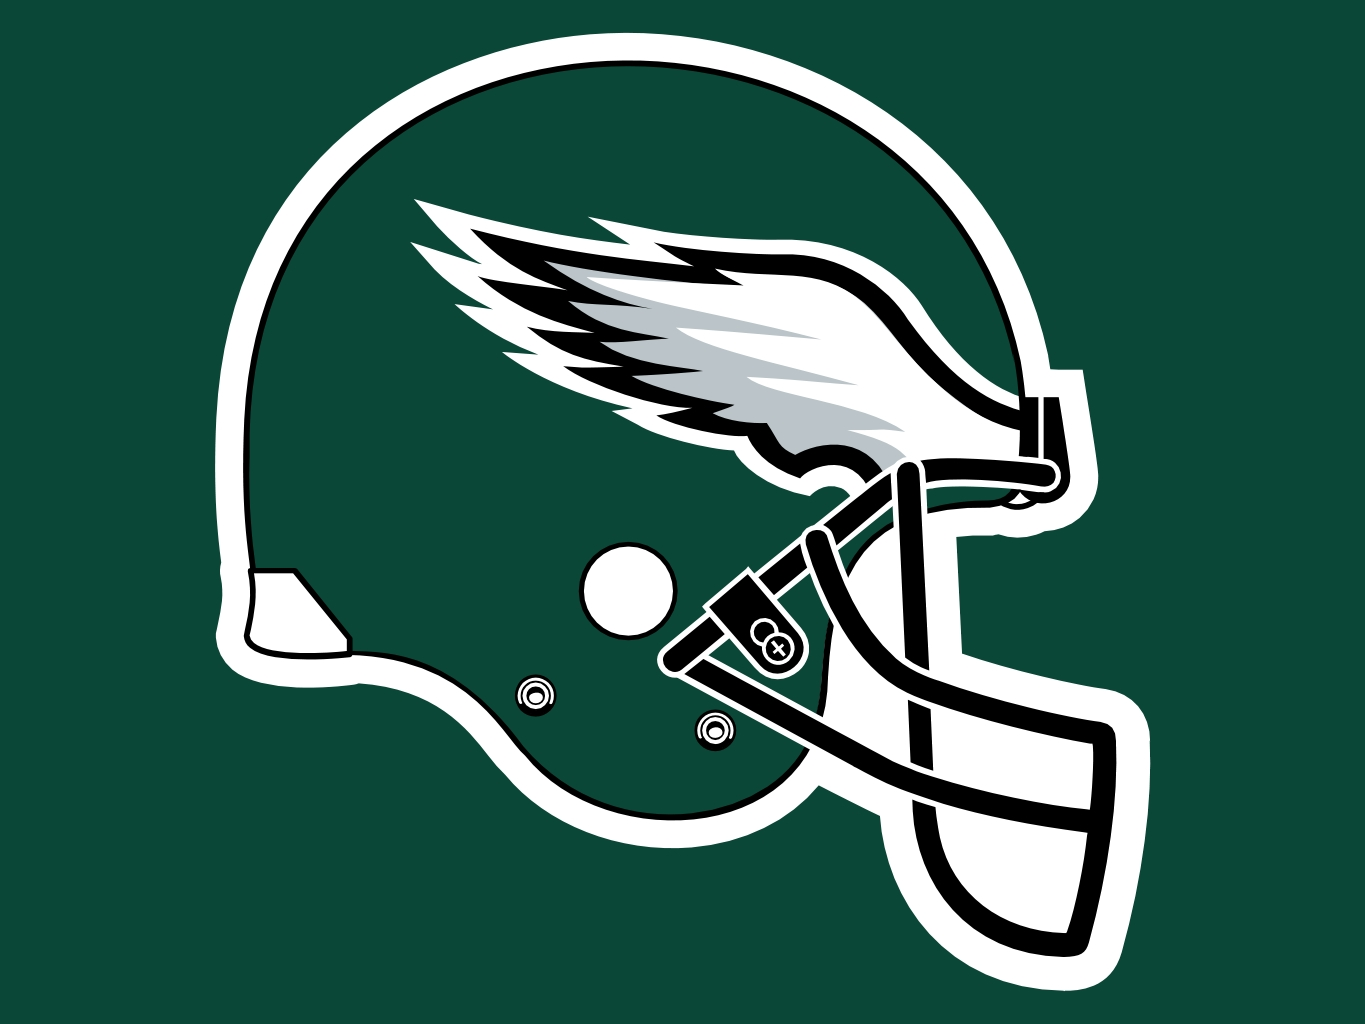 philadelphia eagles hd wallpapers   pictures hd wallpapers phila eagles logo patches phila eagles logo colors